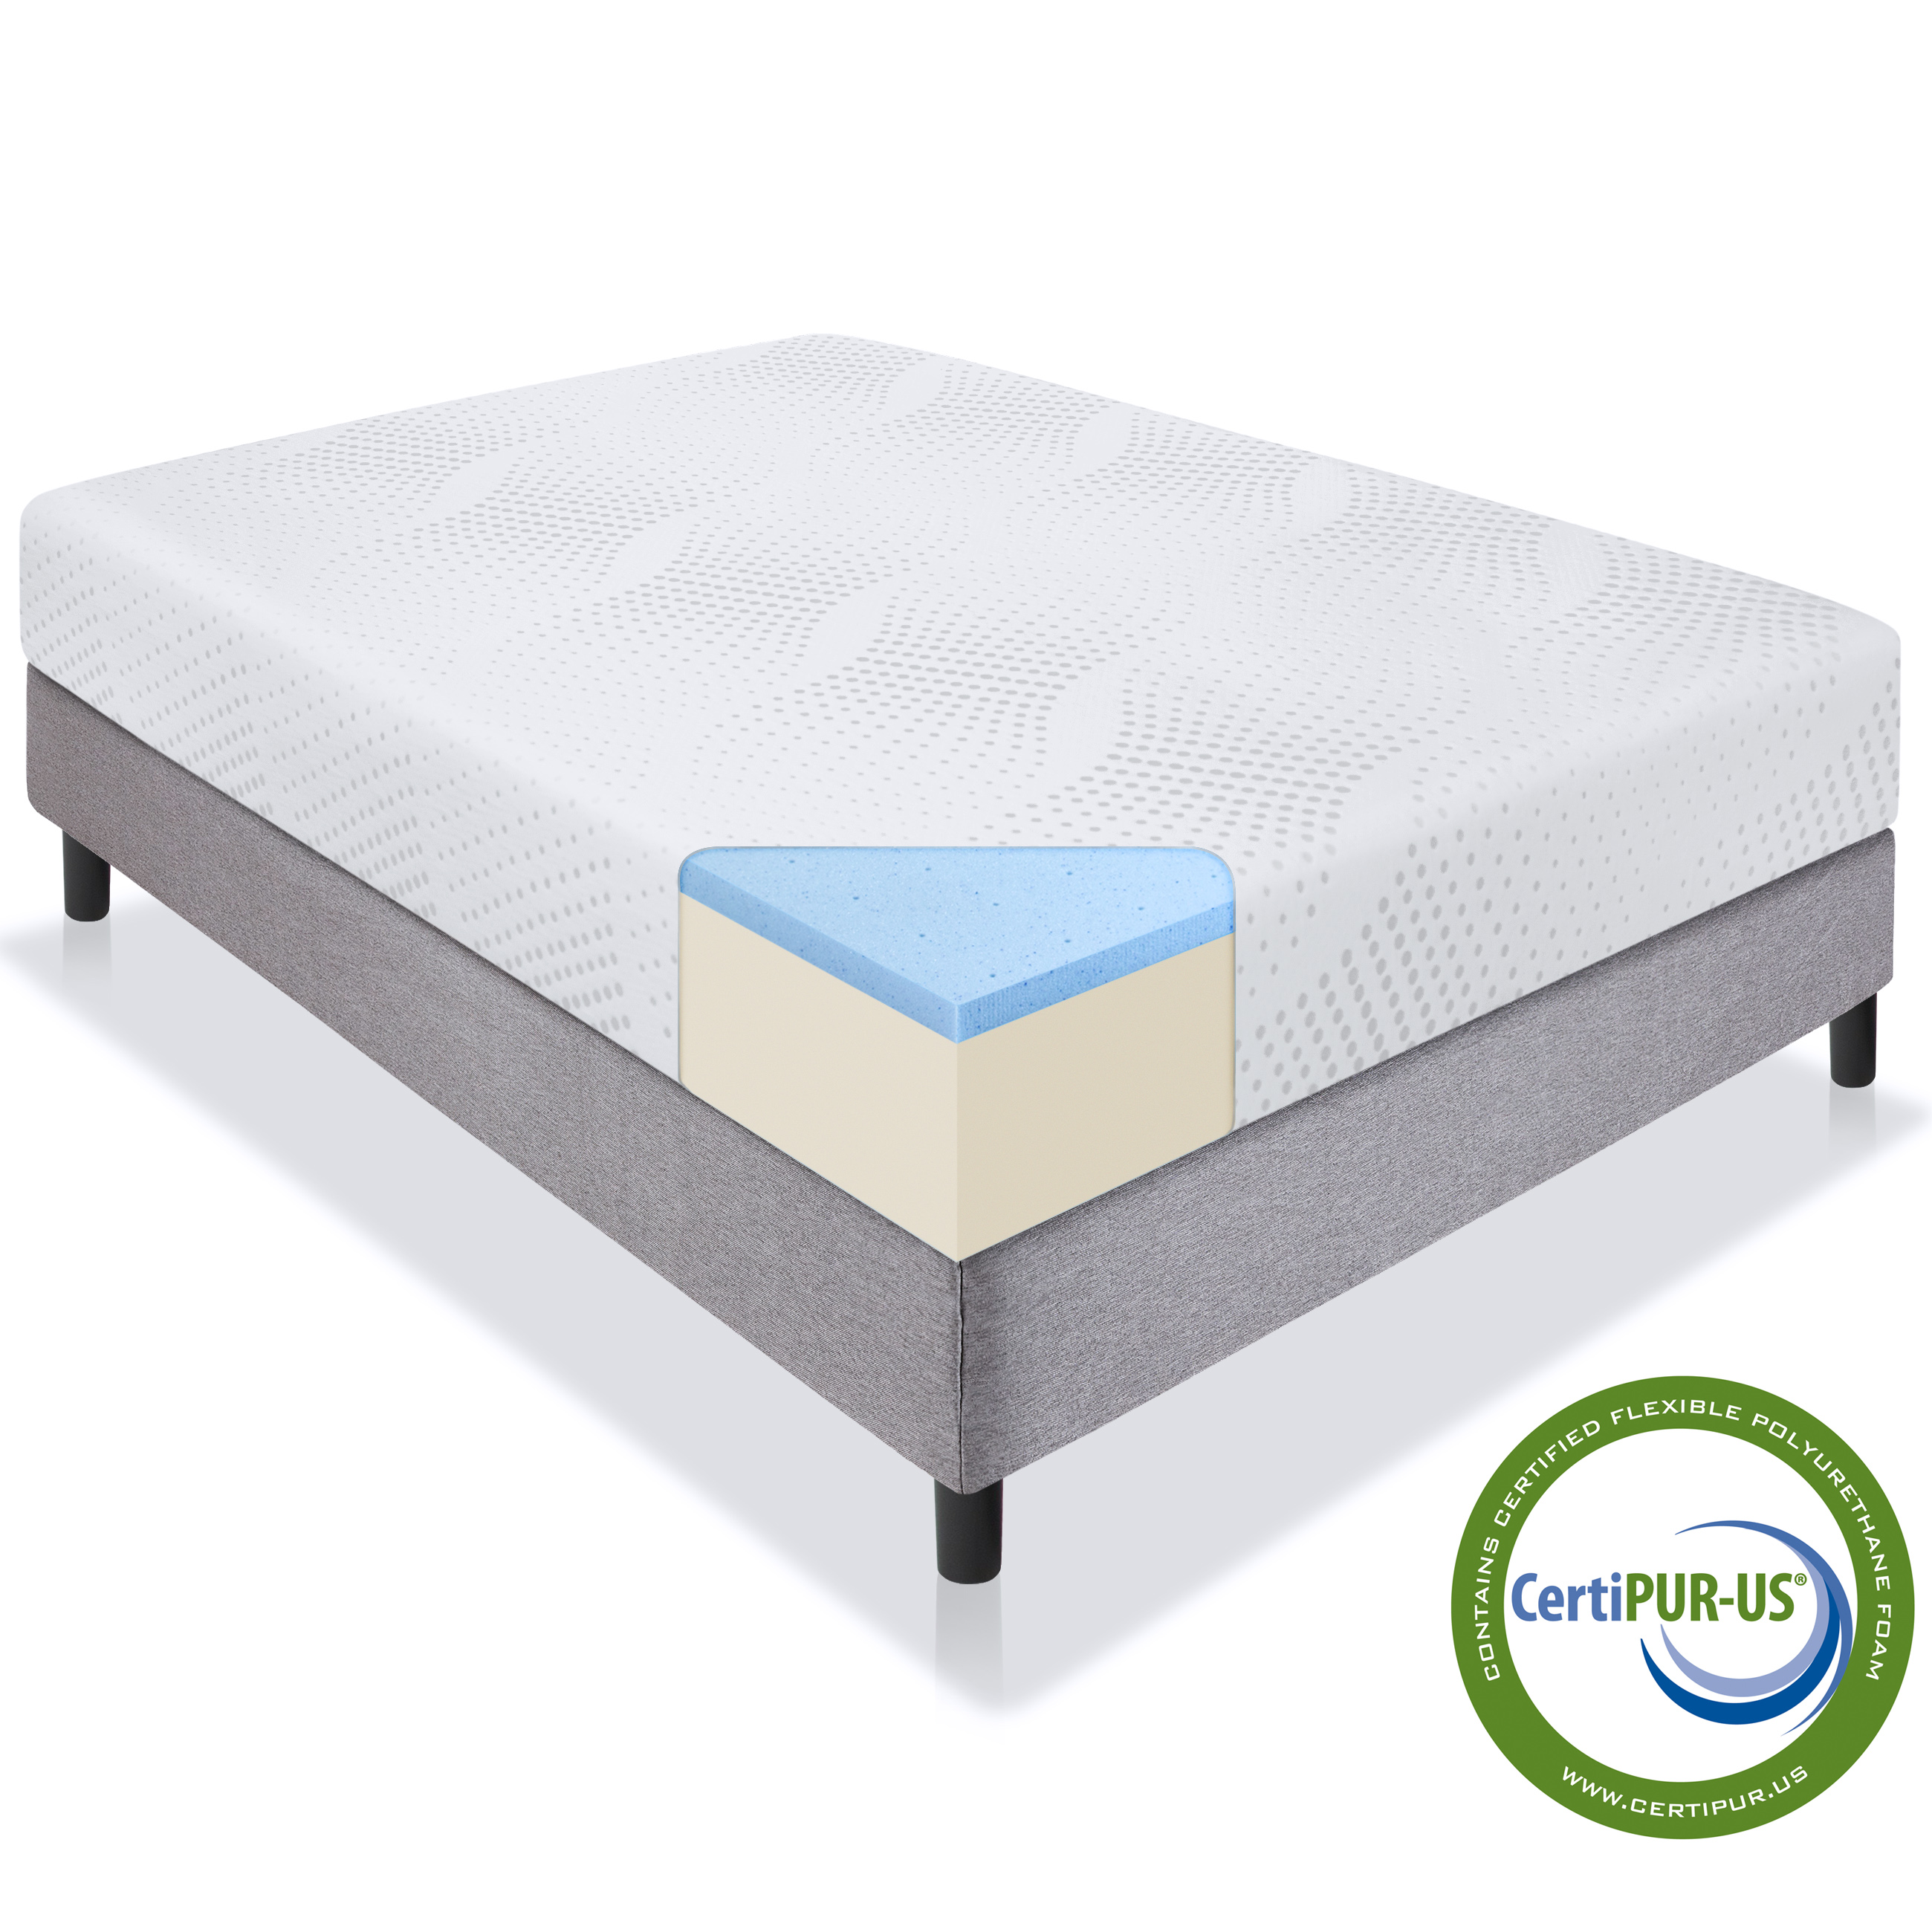 Best Choice Products 10in Queen Size Dual Layered Gel Memory Foam Mattress w/ CertiPUR-US Certified Foam